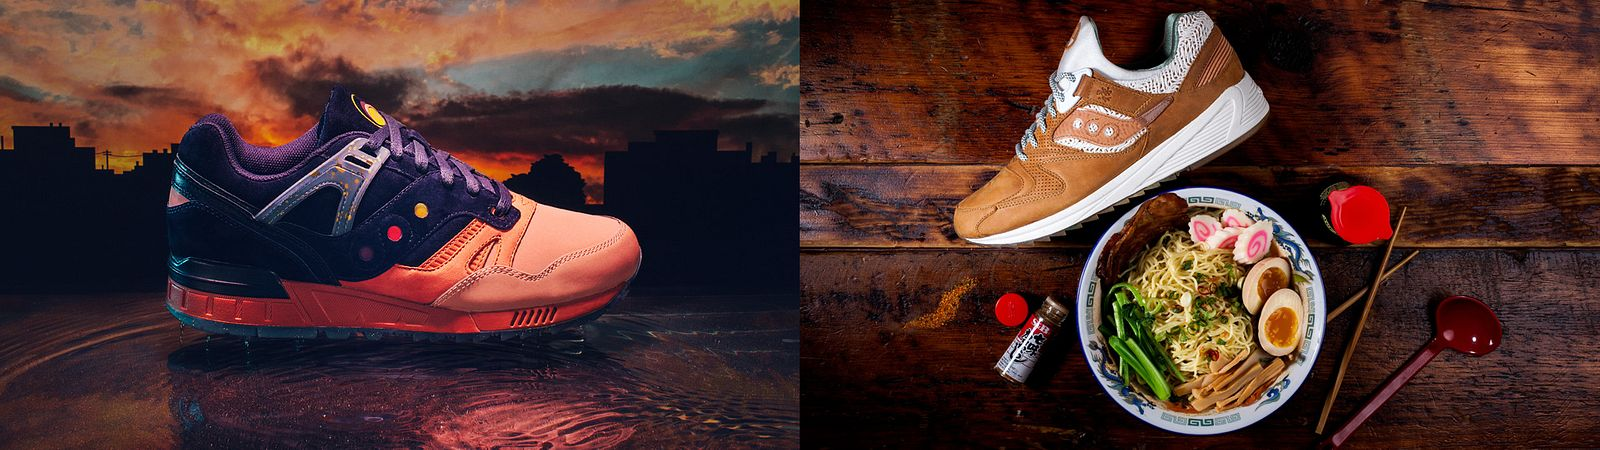 Summer Nights and Ramen shoes for Saucony Originals, styled by Someoddpilot